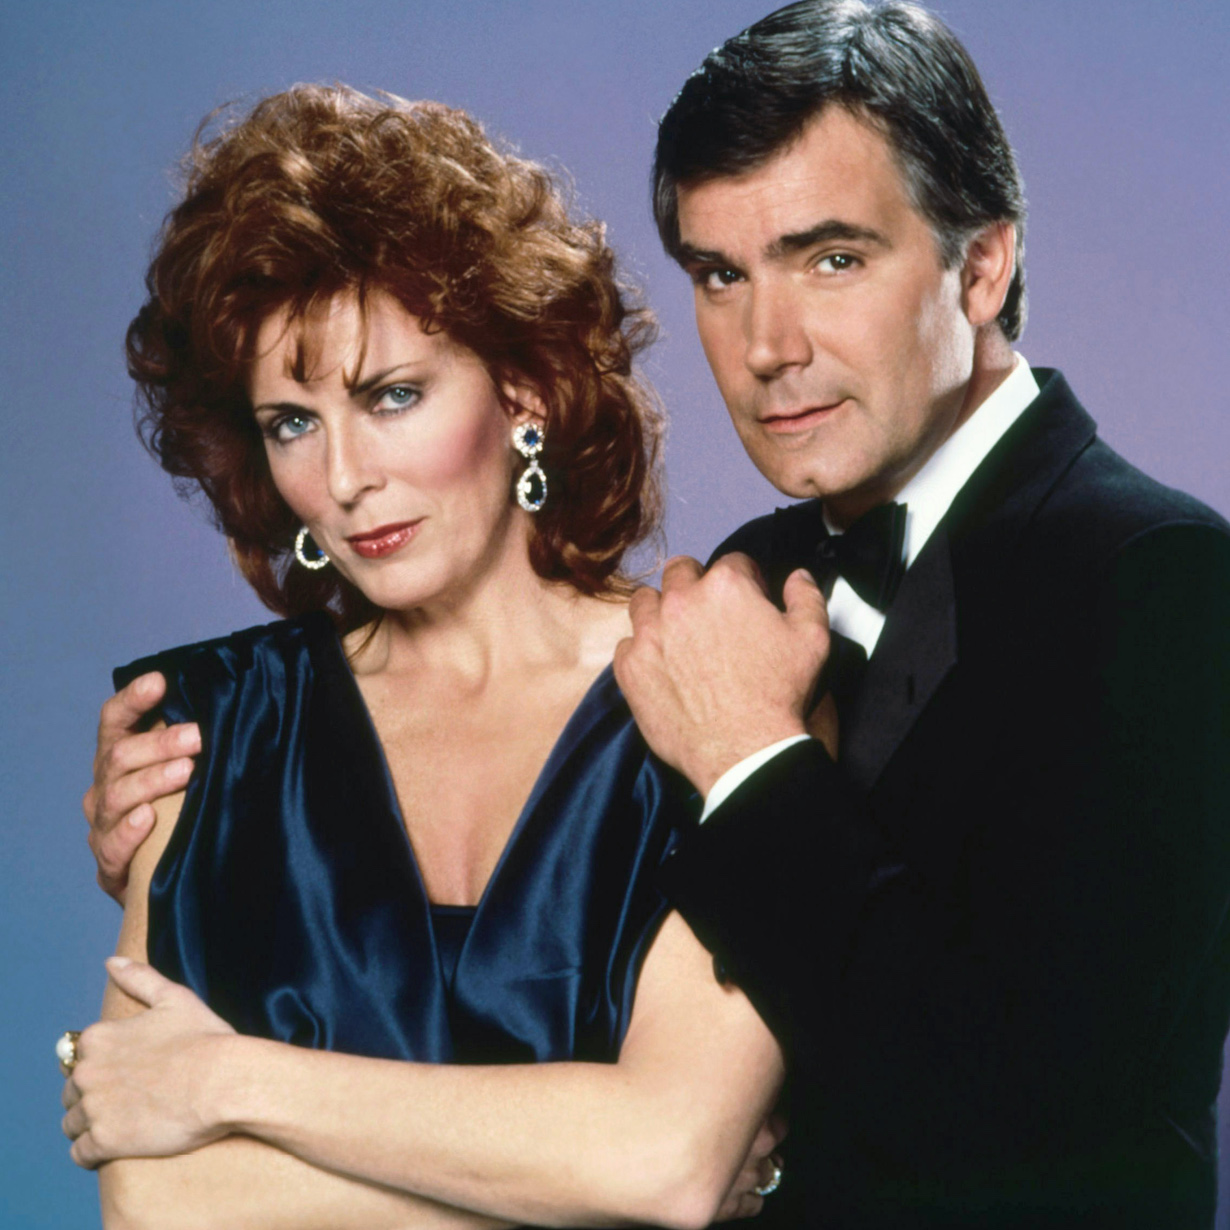 CODE NAME: FOXFIRE, from left: Joanna Cassidy, John McCook, 1985, © NBC/courtesy Everett Collection